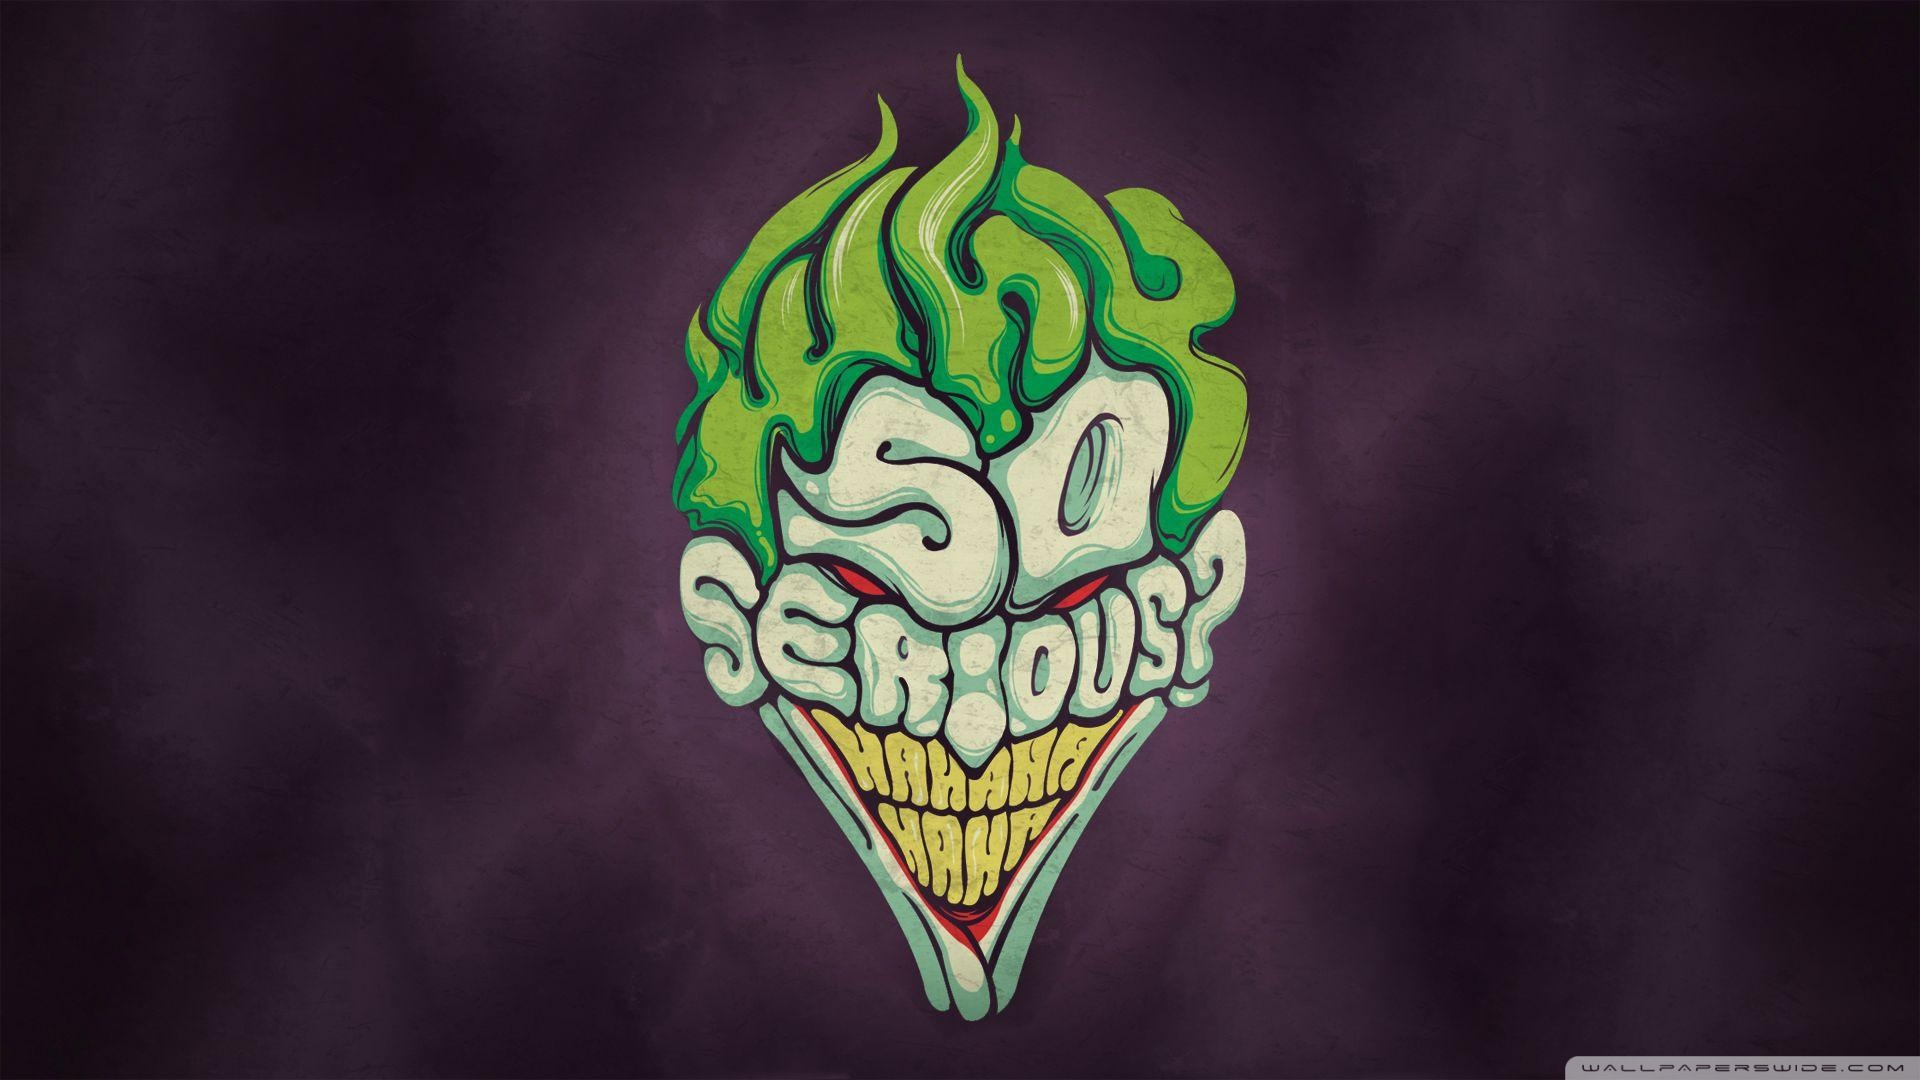 Joker Why So Serious Drawings Wallpaper High Quality Resolution Is Cool Wallpapers